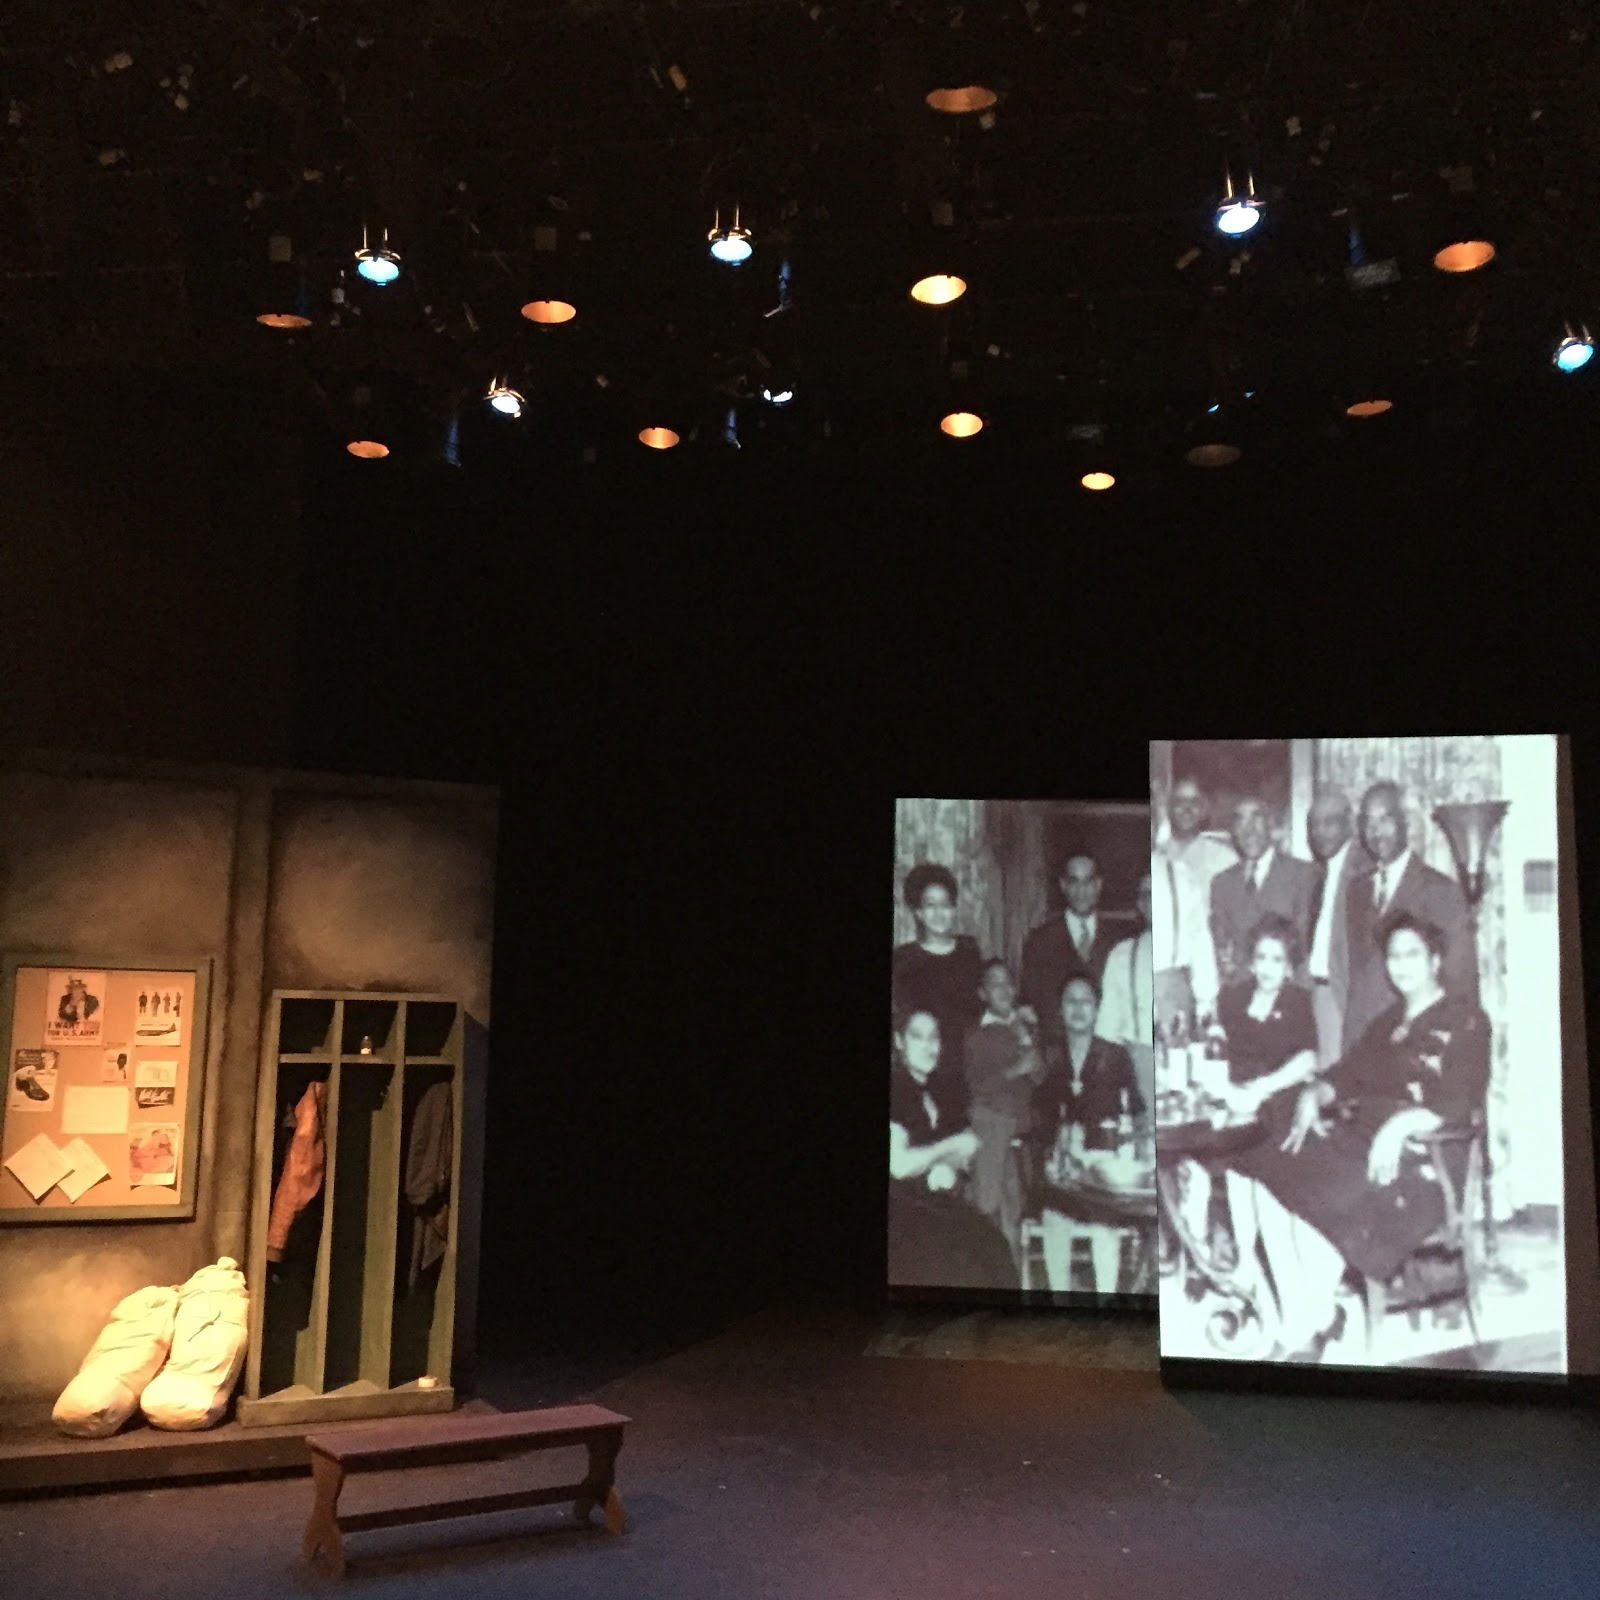 Theater department premieres play revealing racist housing policies of the past